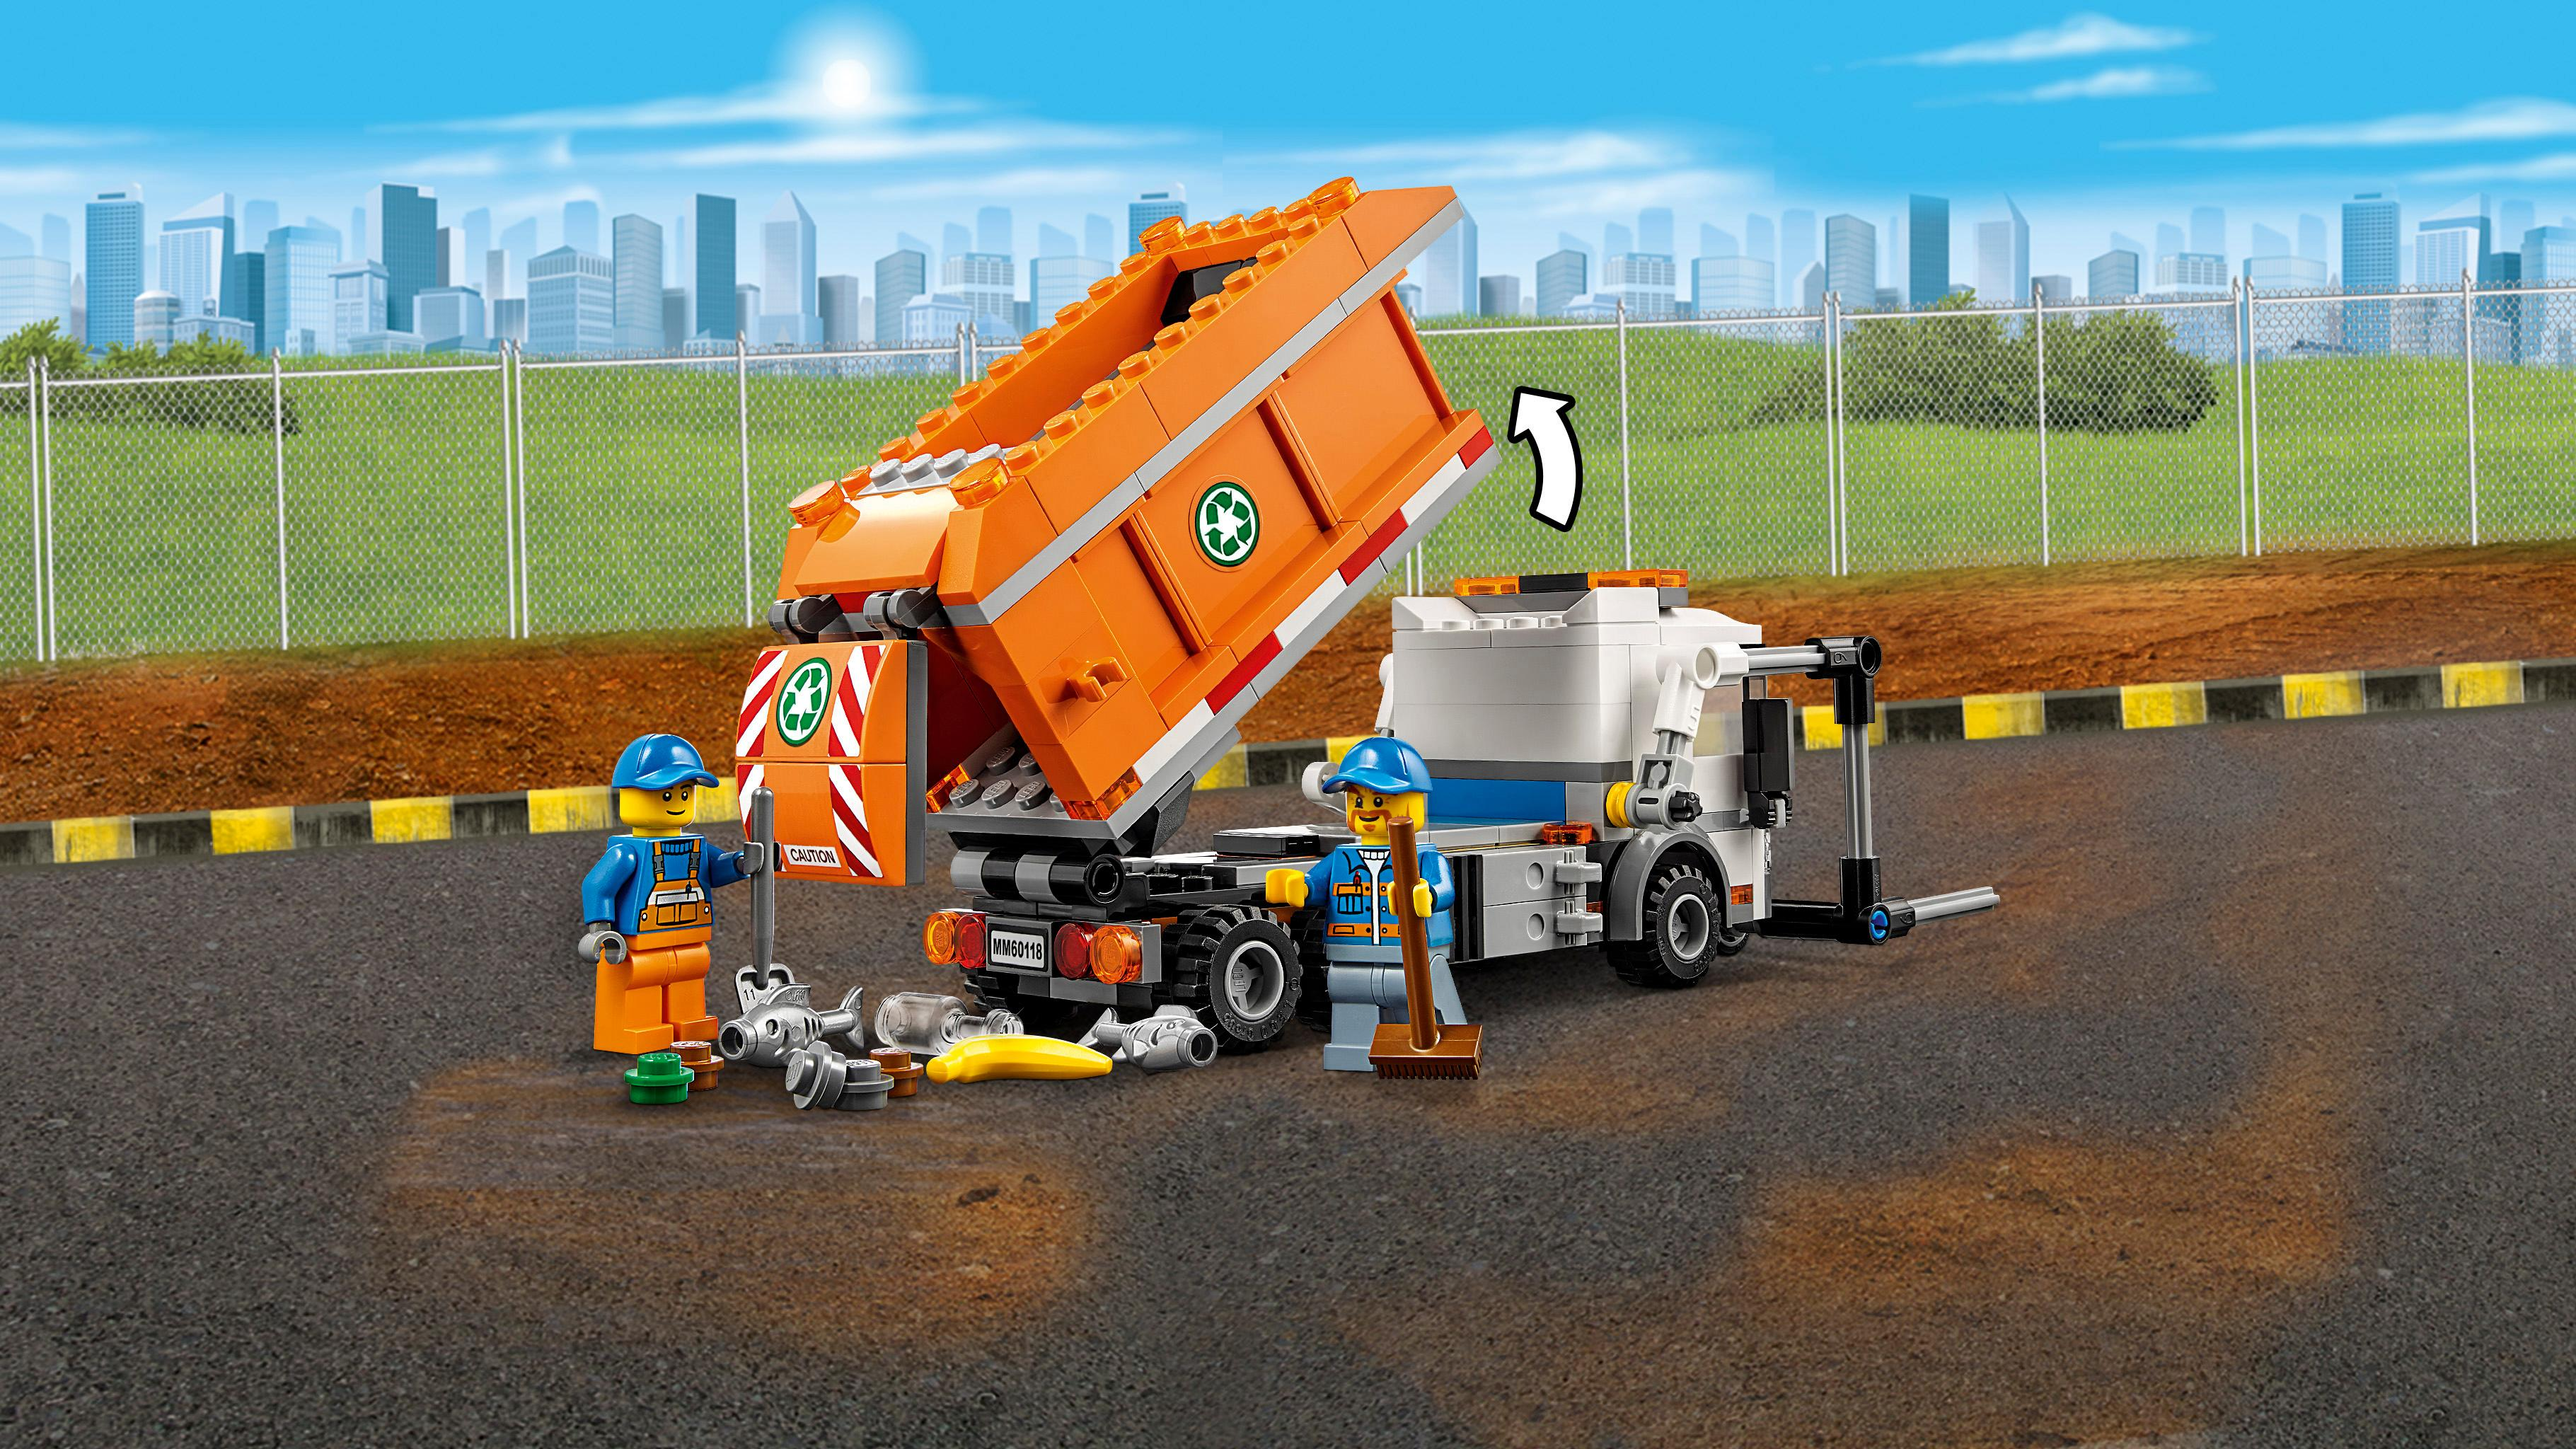 Lego City Great Vehicles 60118 Garbage Truck Playset Lego